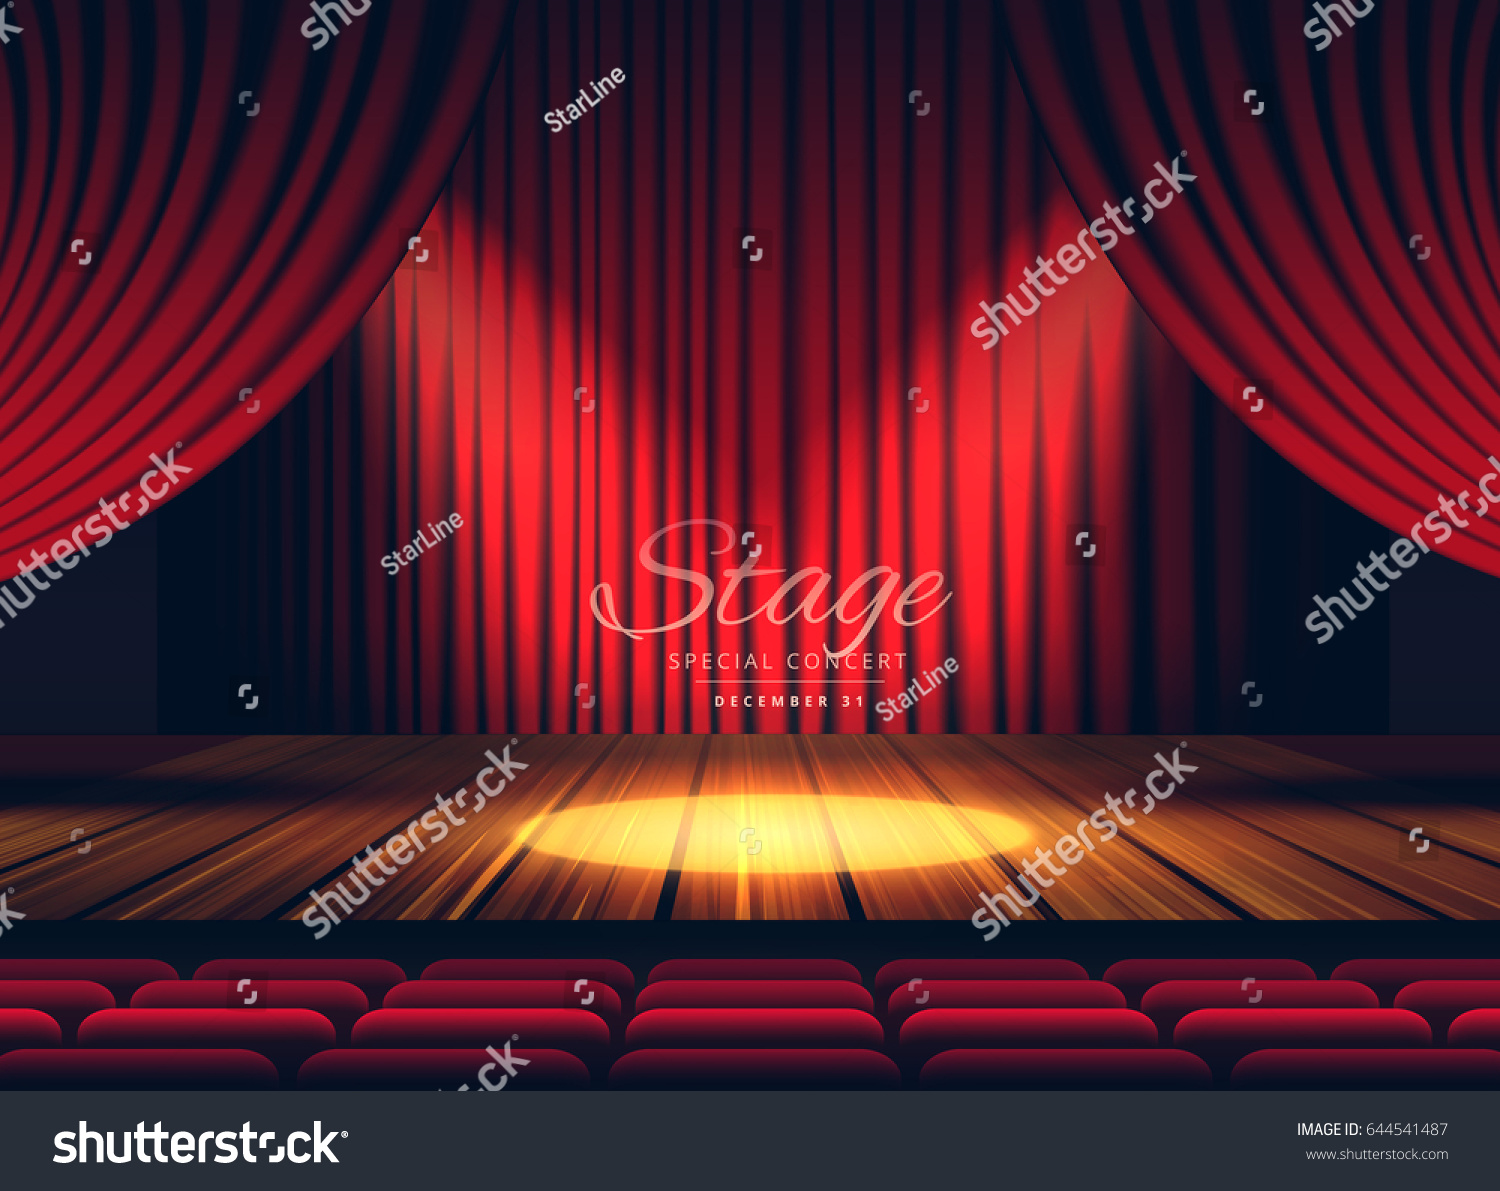 Stock photo dramatic red old fashioned elegant theater stage stock - Premium Red Curtains Stage Theater Or Opera Background With Spotlight